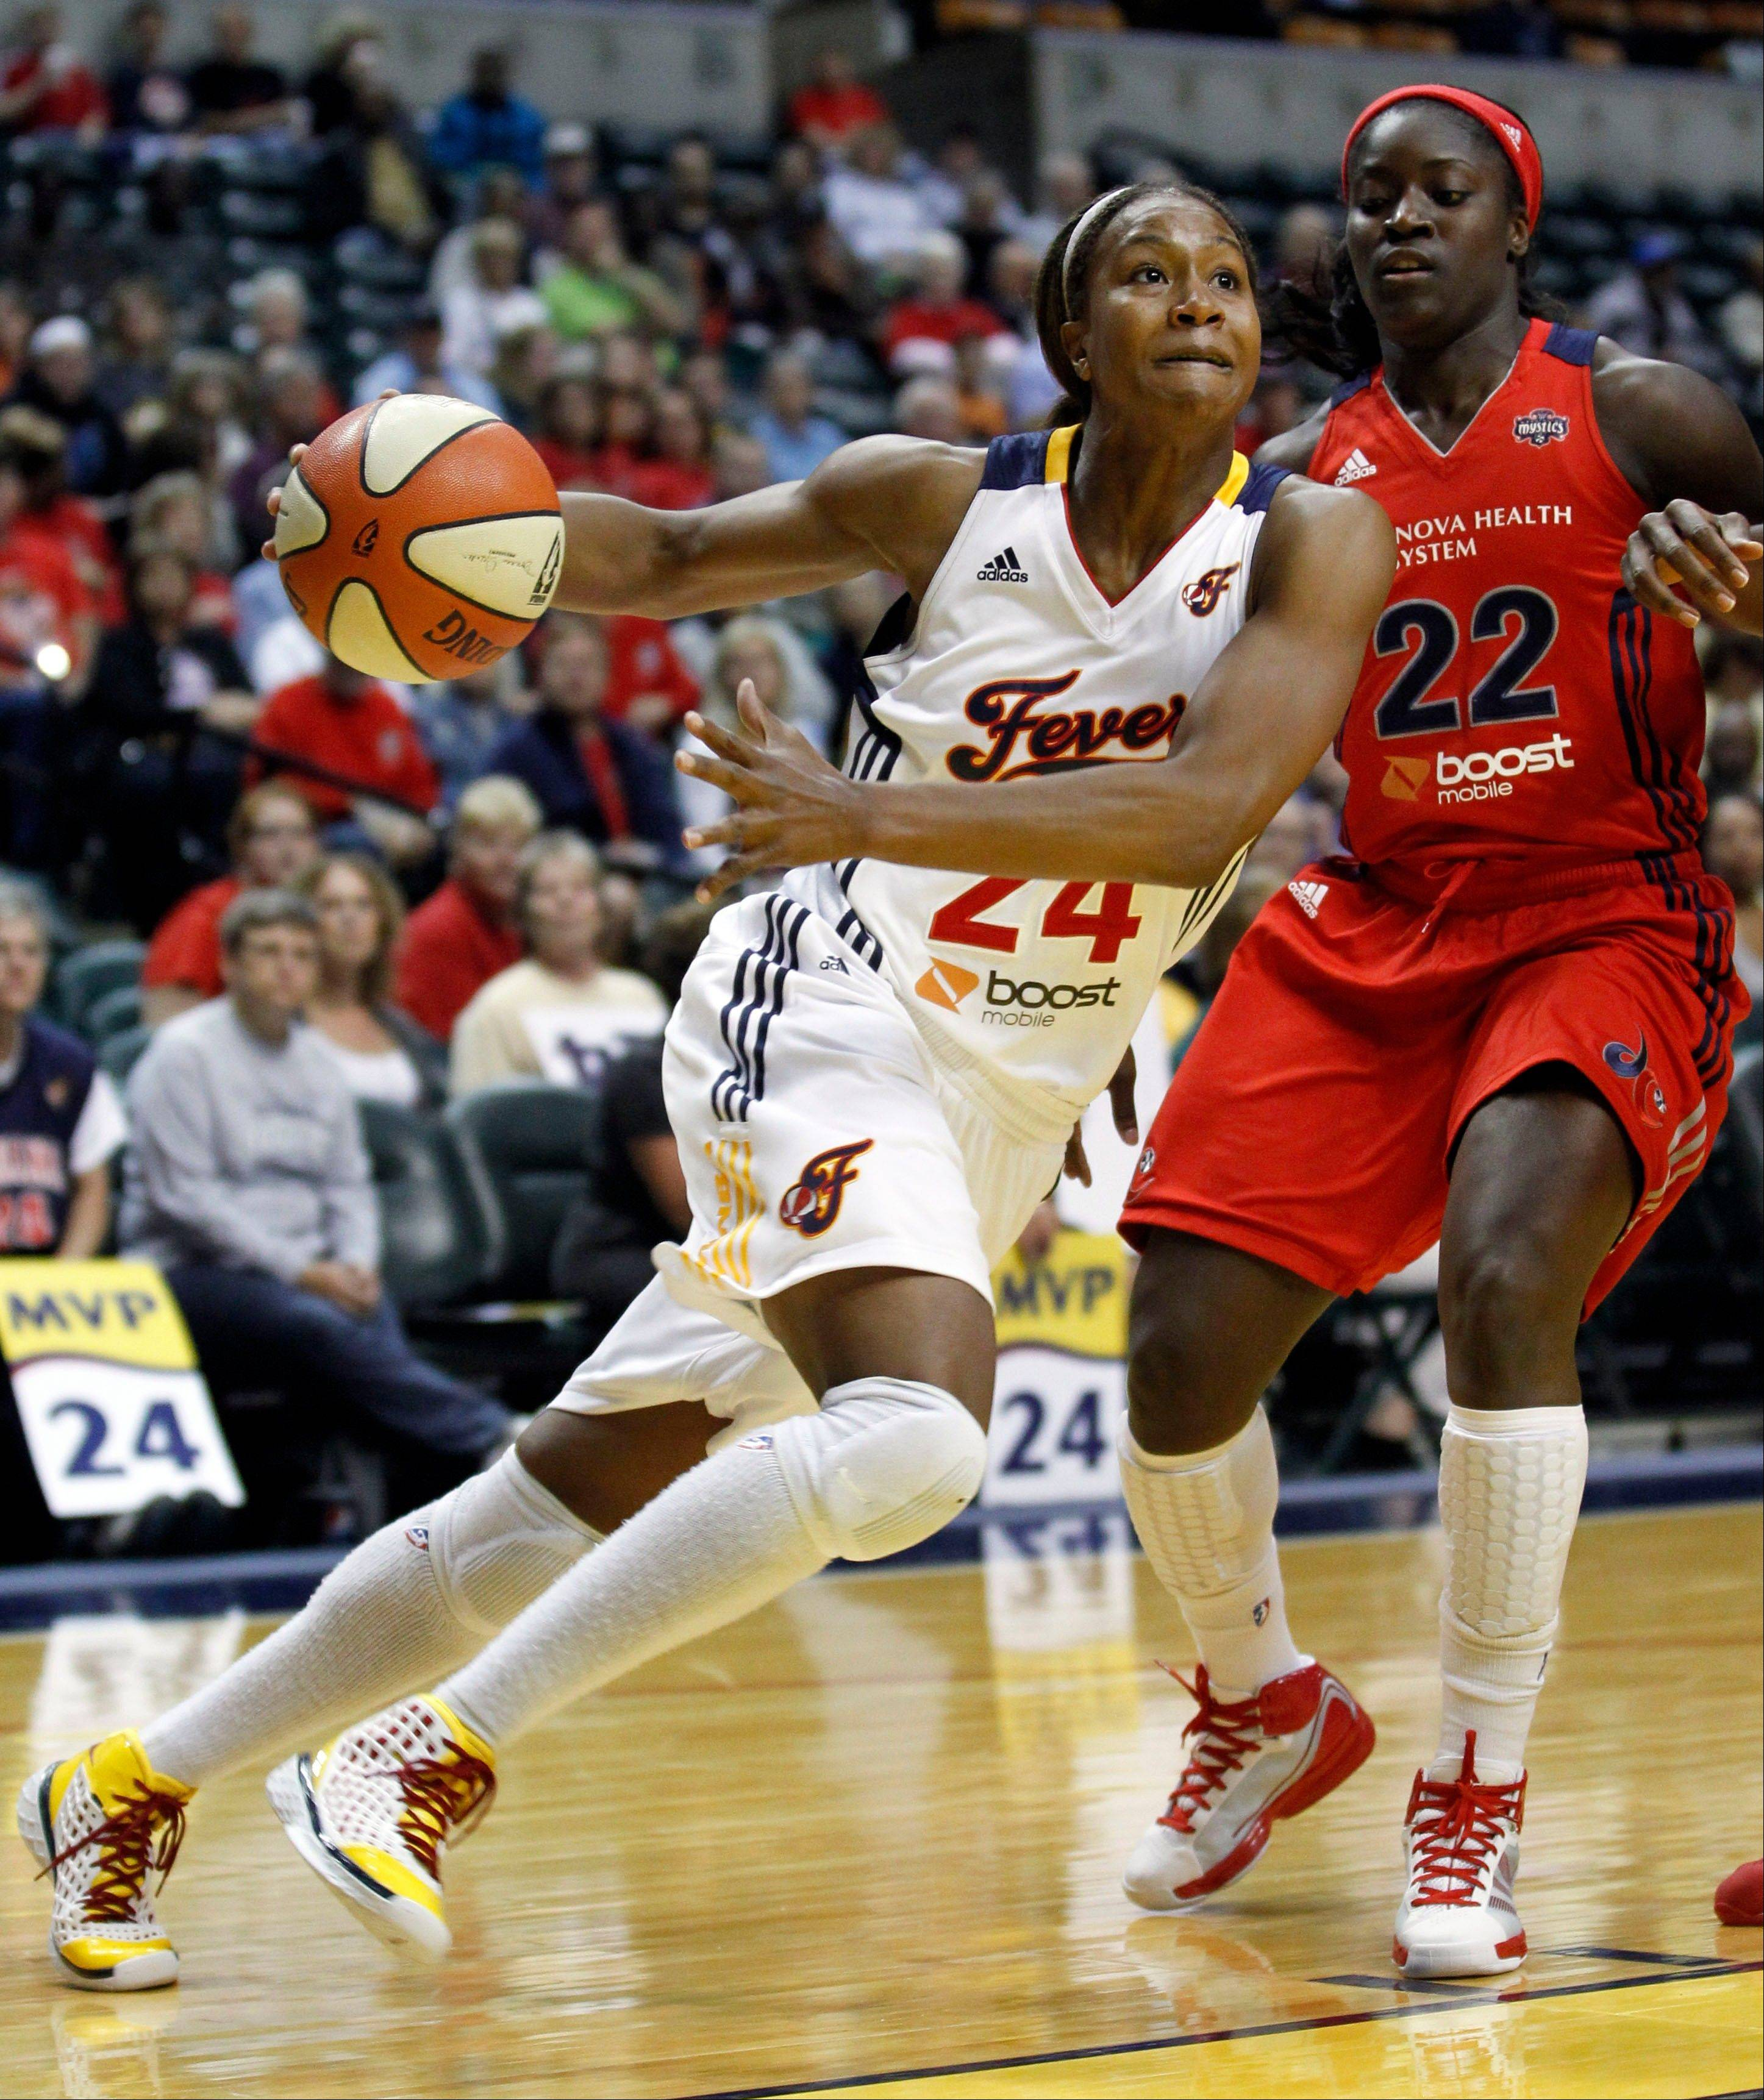 Indiana Fever forward Tamika Catchings has her best chance ever to win a WNBA title.